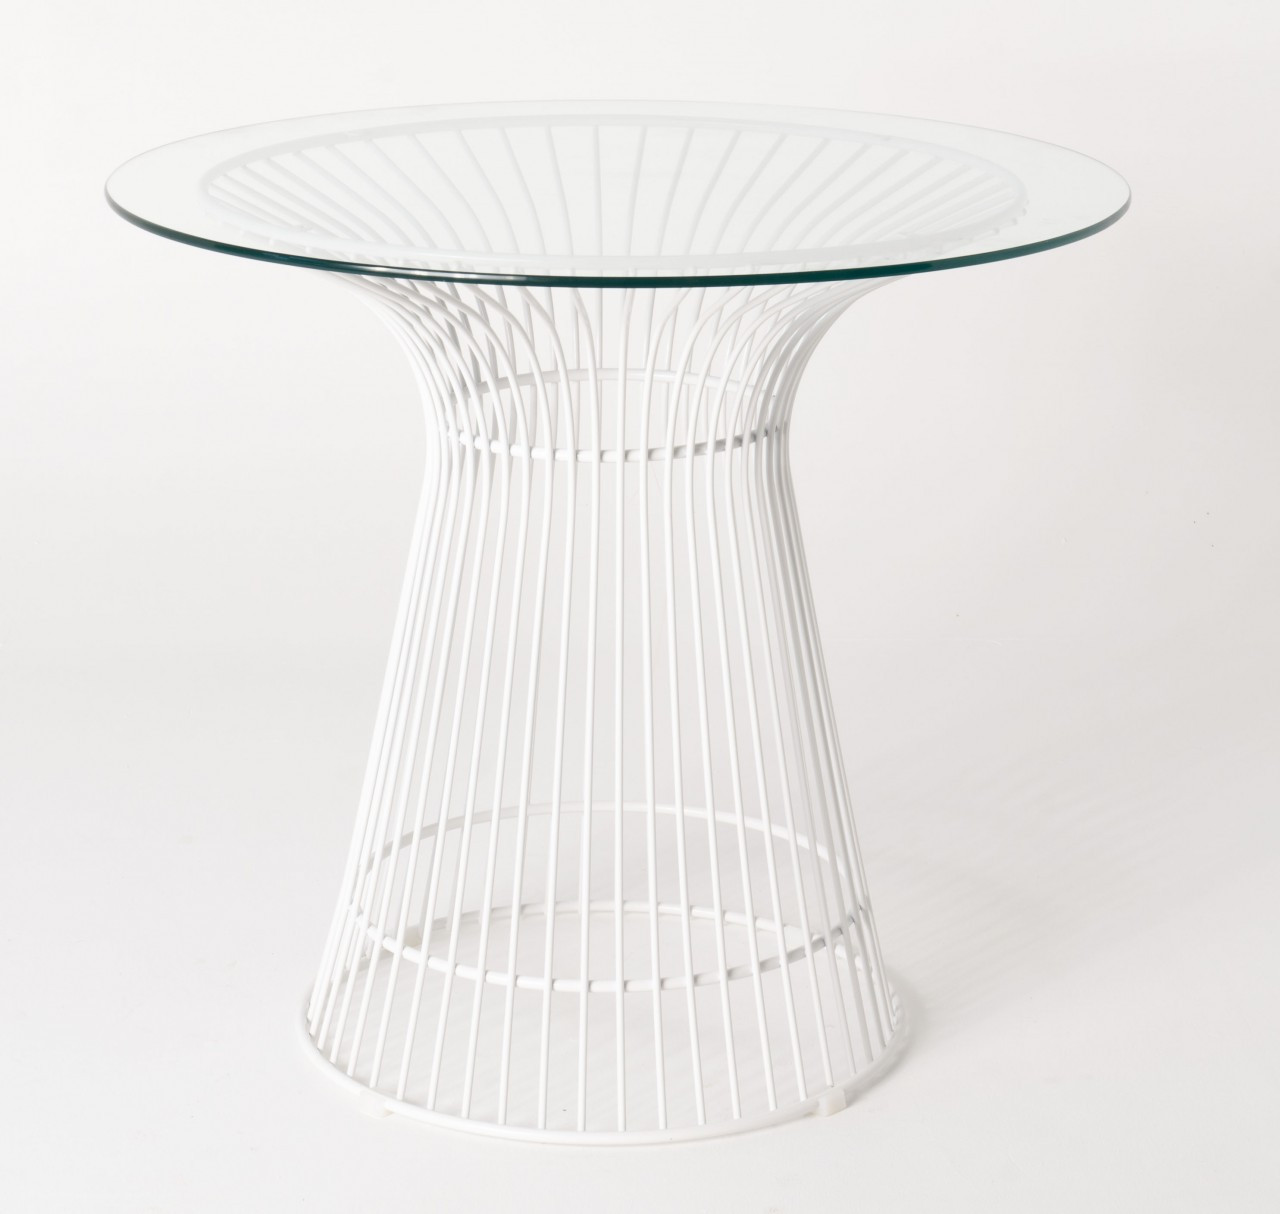 Replica Warren Platner - Wire Dining Table - White Powdercoated - Glass Top - 80cm, 90cm